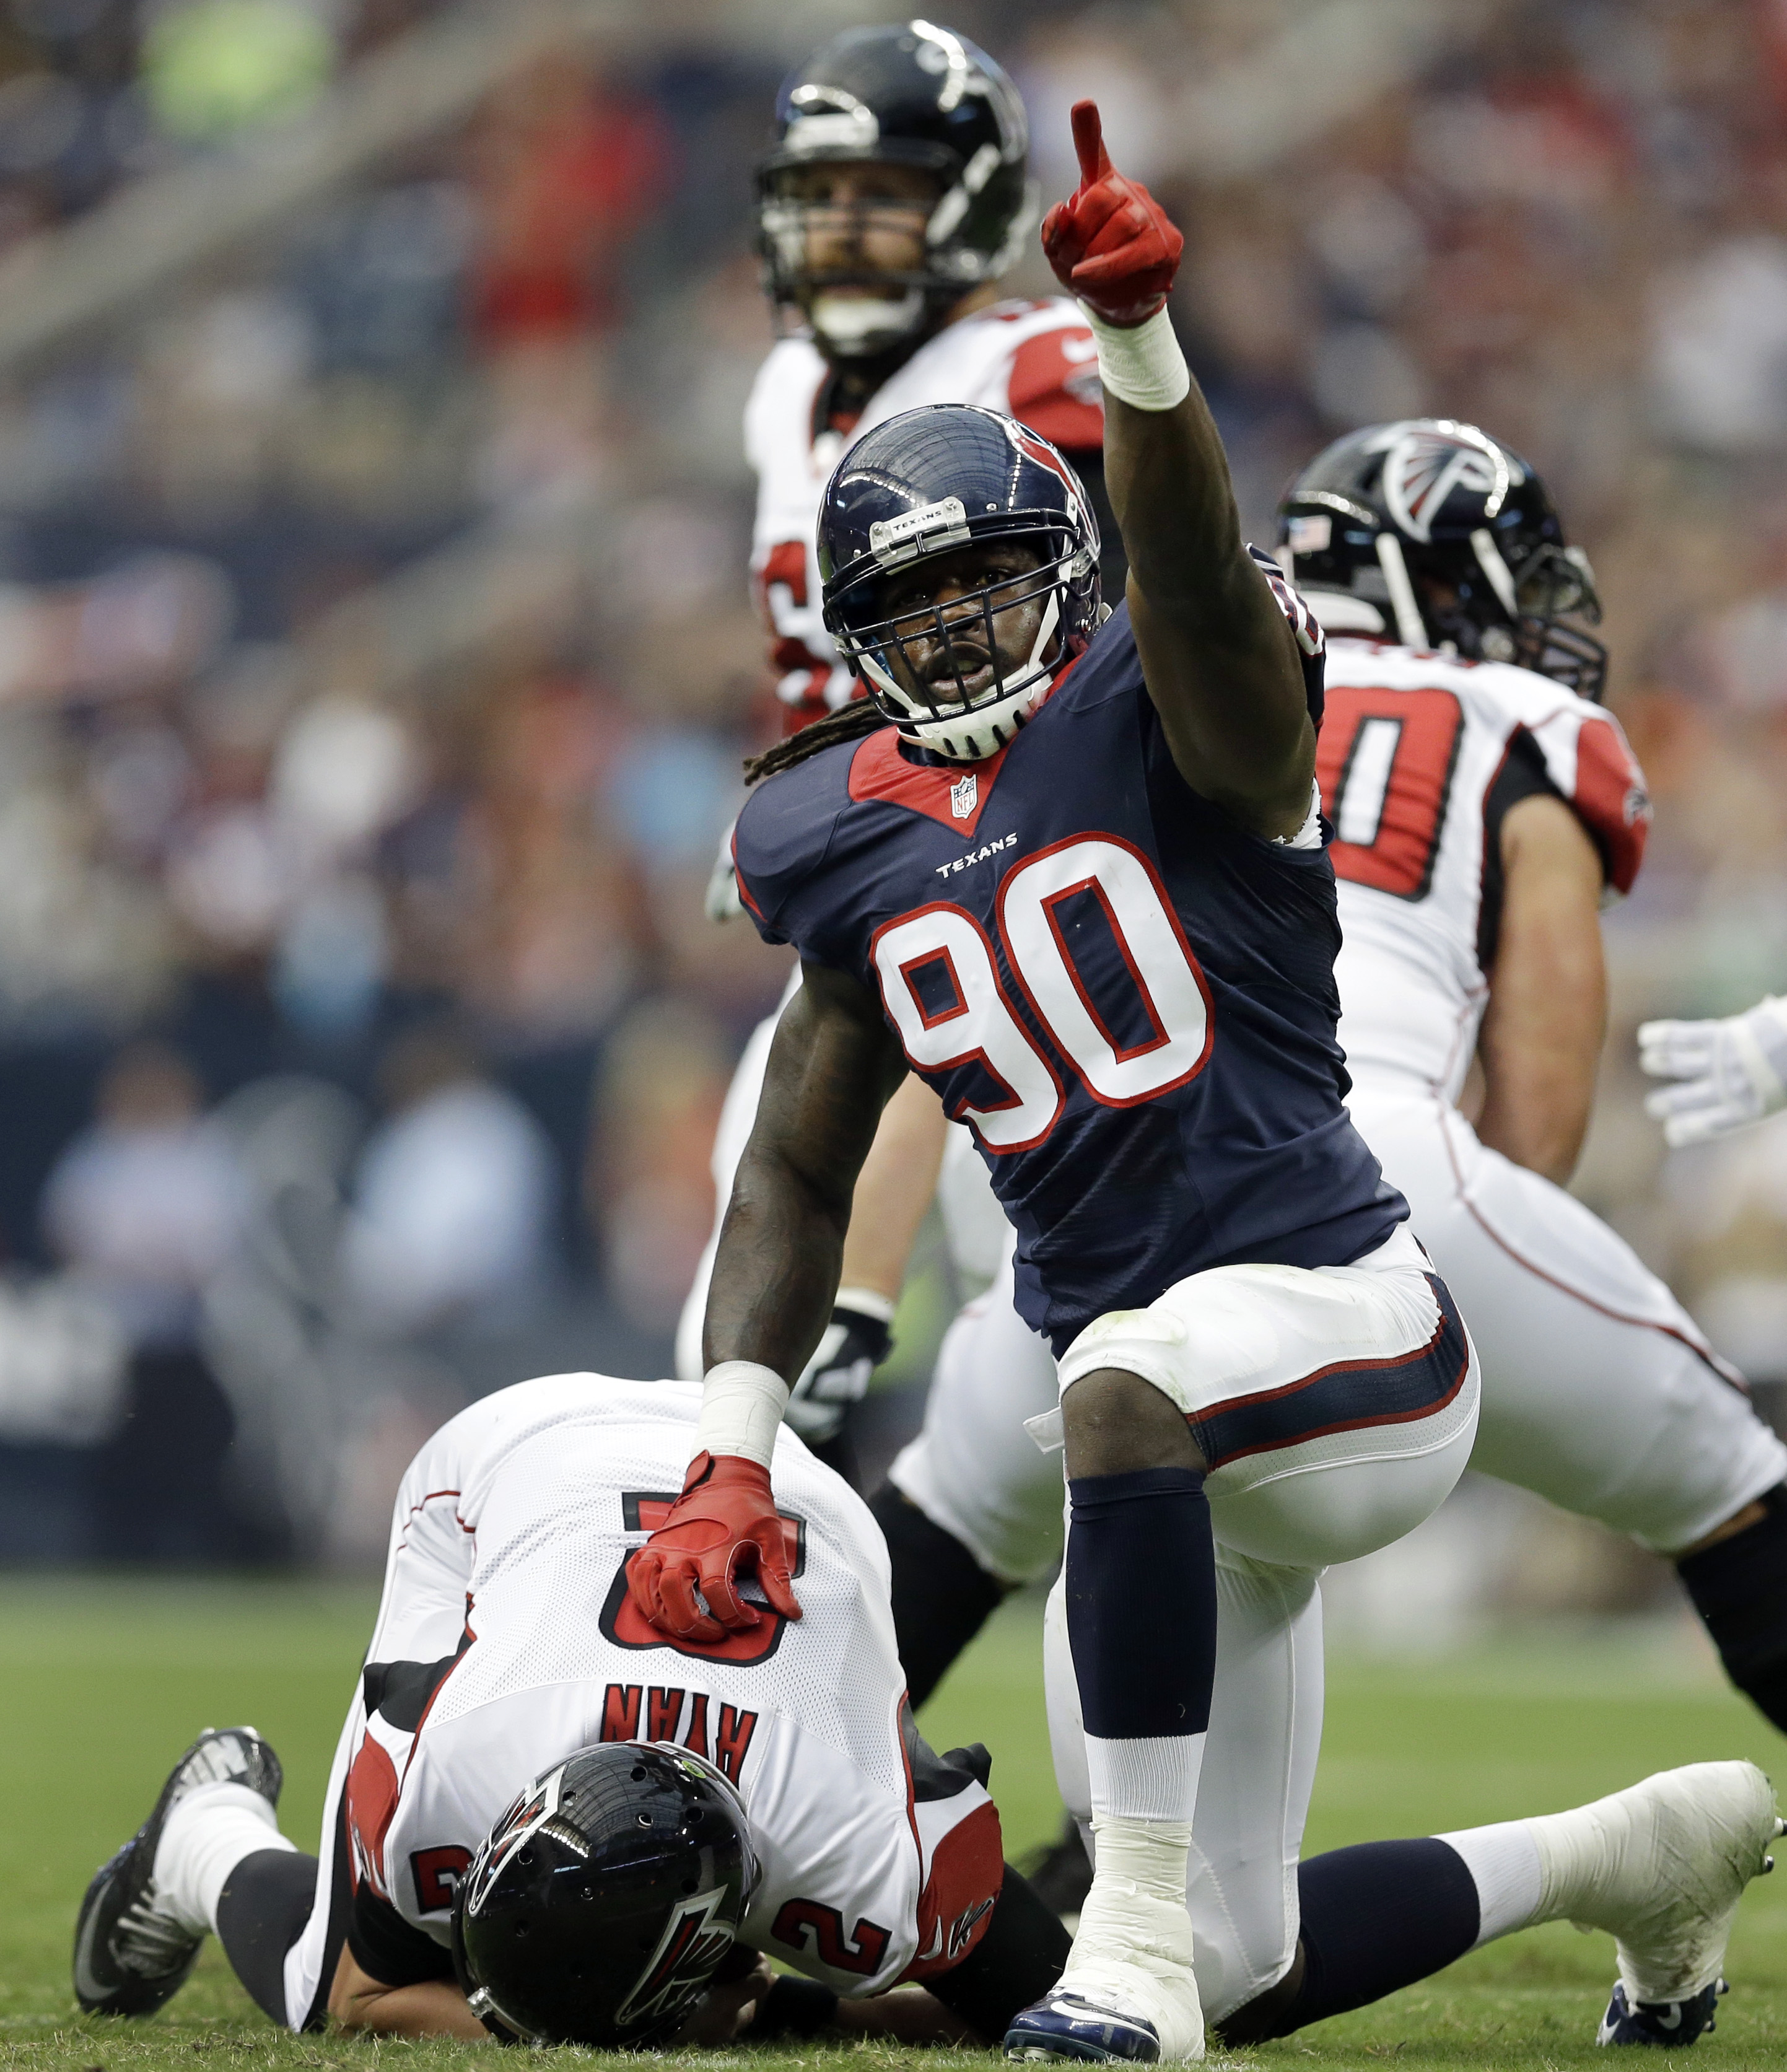 Jadeveon Clowney says he had concussion in preseason will play vs